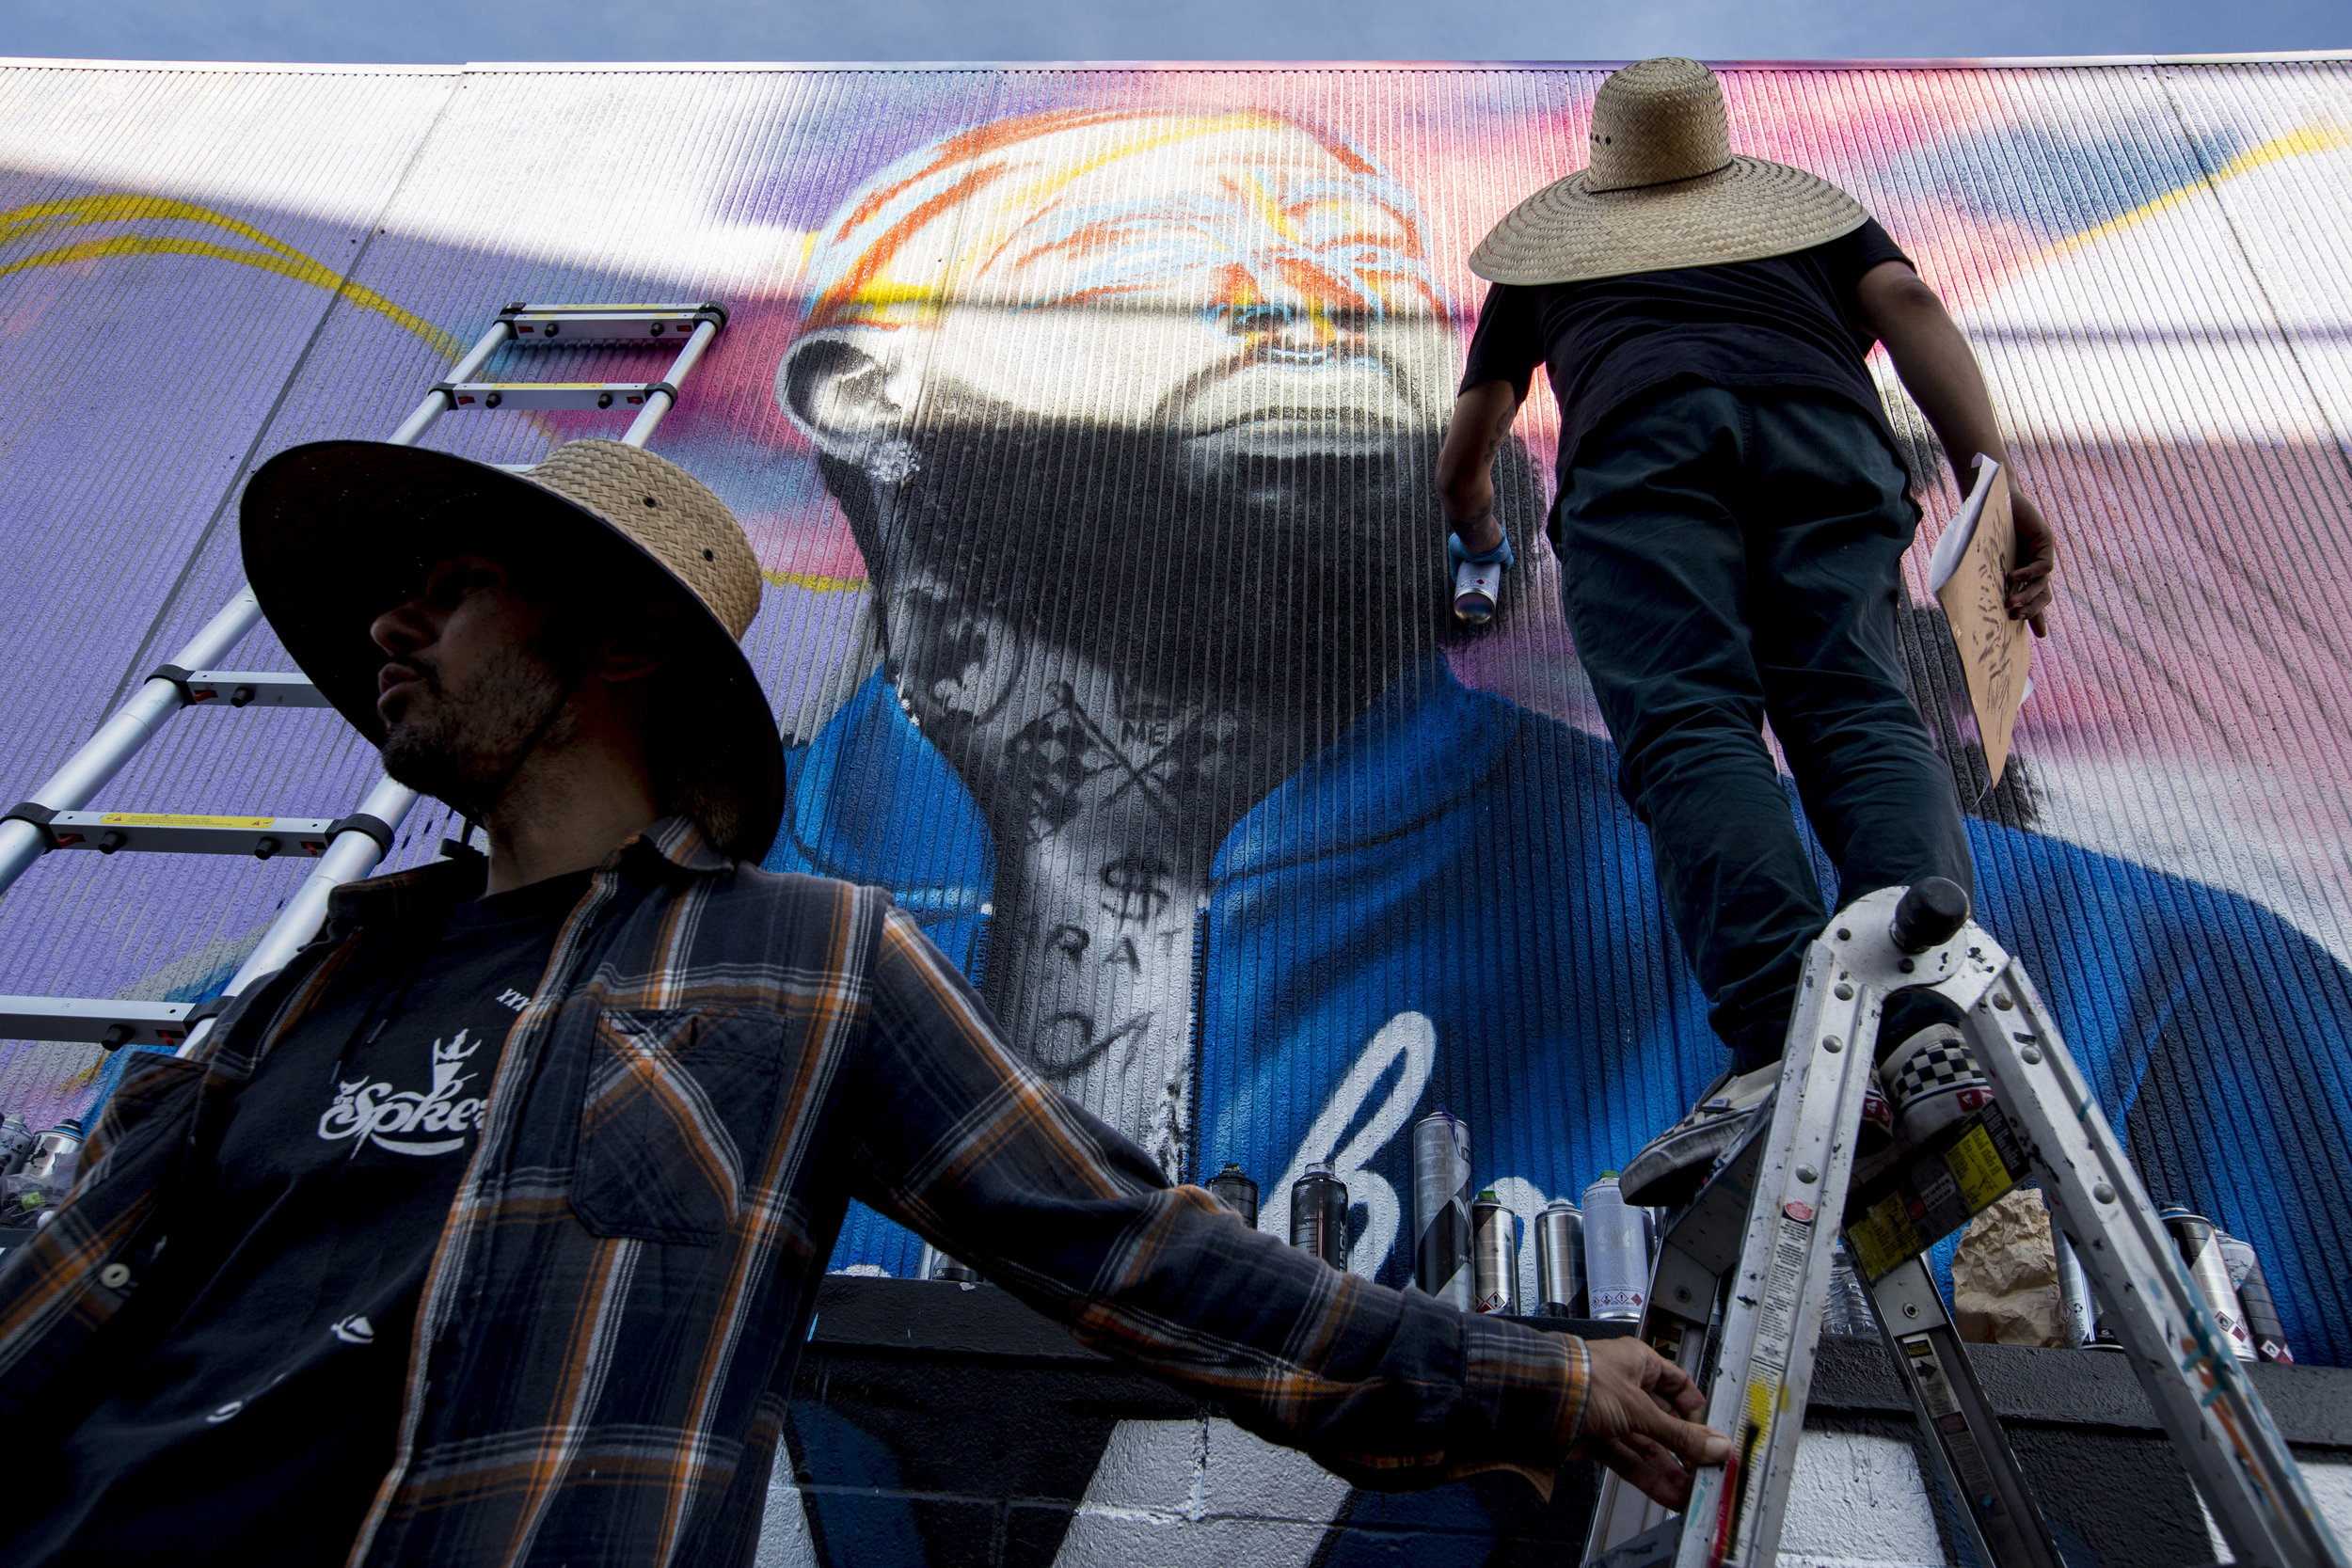 """Daniel Mateo and his crew pay their respects to Nipsey by painting a mural on a wall in the alley near The Marathon Clothing store off of Slauson Avenue and Crenshaw Boulevard in Los Angeles, California on April 6, 2019. Mateo said that it all started when he shared the idea with Hussle's family, which they really loved, allowing him to start production. The mural is a labor of love and respect, by Mateo, as he responded by sharing that he is there doing it for free and not charging for the work. He said, """"We gotta show our respect for Nipsey."""" When asked if he sees himself embracing any of the principles that Nipsey was popularizing, Mateo said that, """"In a way we're all living his life. We are daily hustling, grinding. Hopefully we can take some of his knowledge and help out others, whether it be the community, small organizations. Anything that can pretty much help each other out. Yea, I'm pretty sure ill be doing that."""" (Jose Lopez)"""